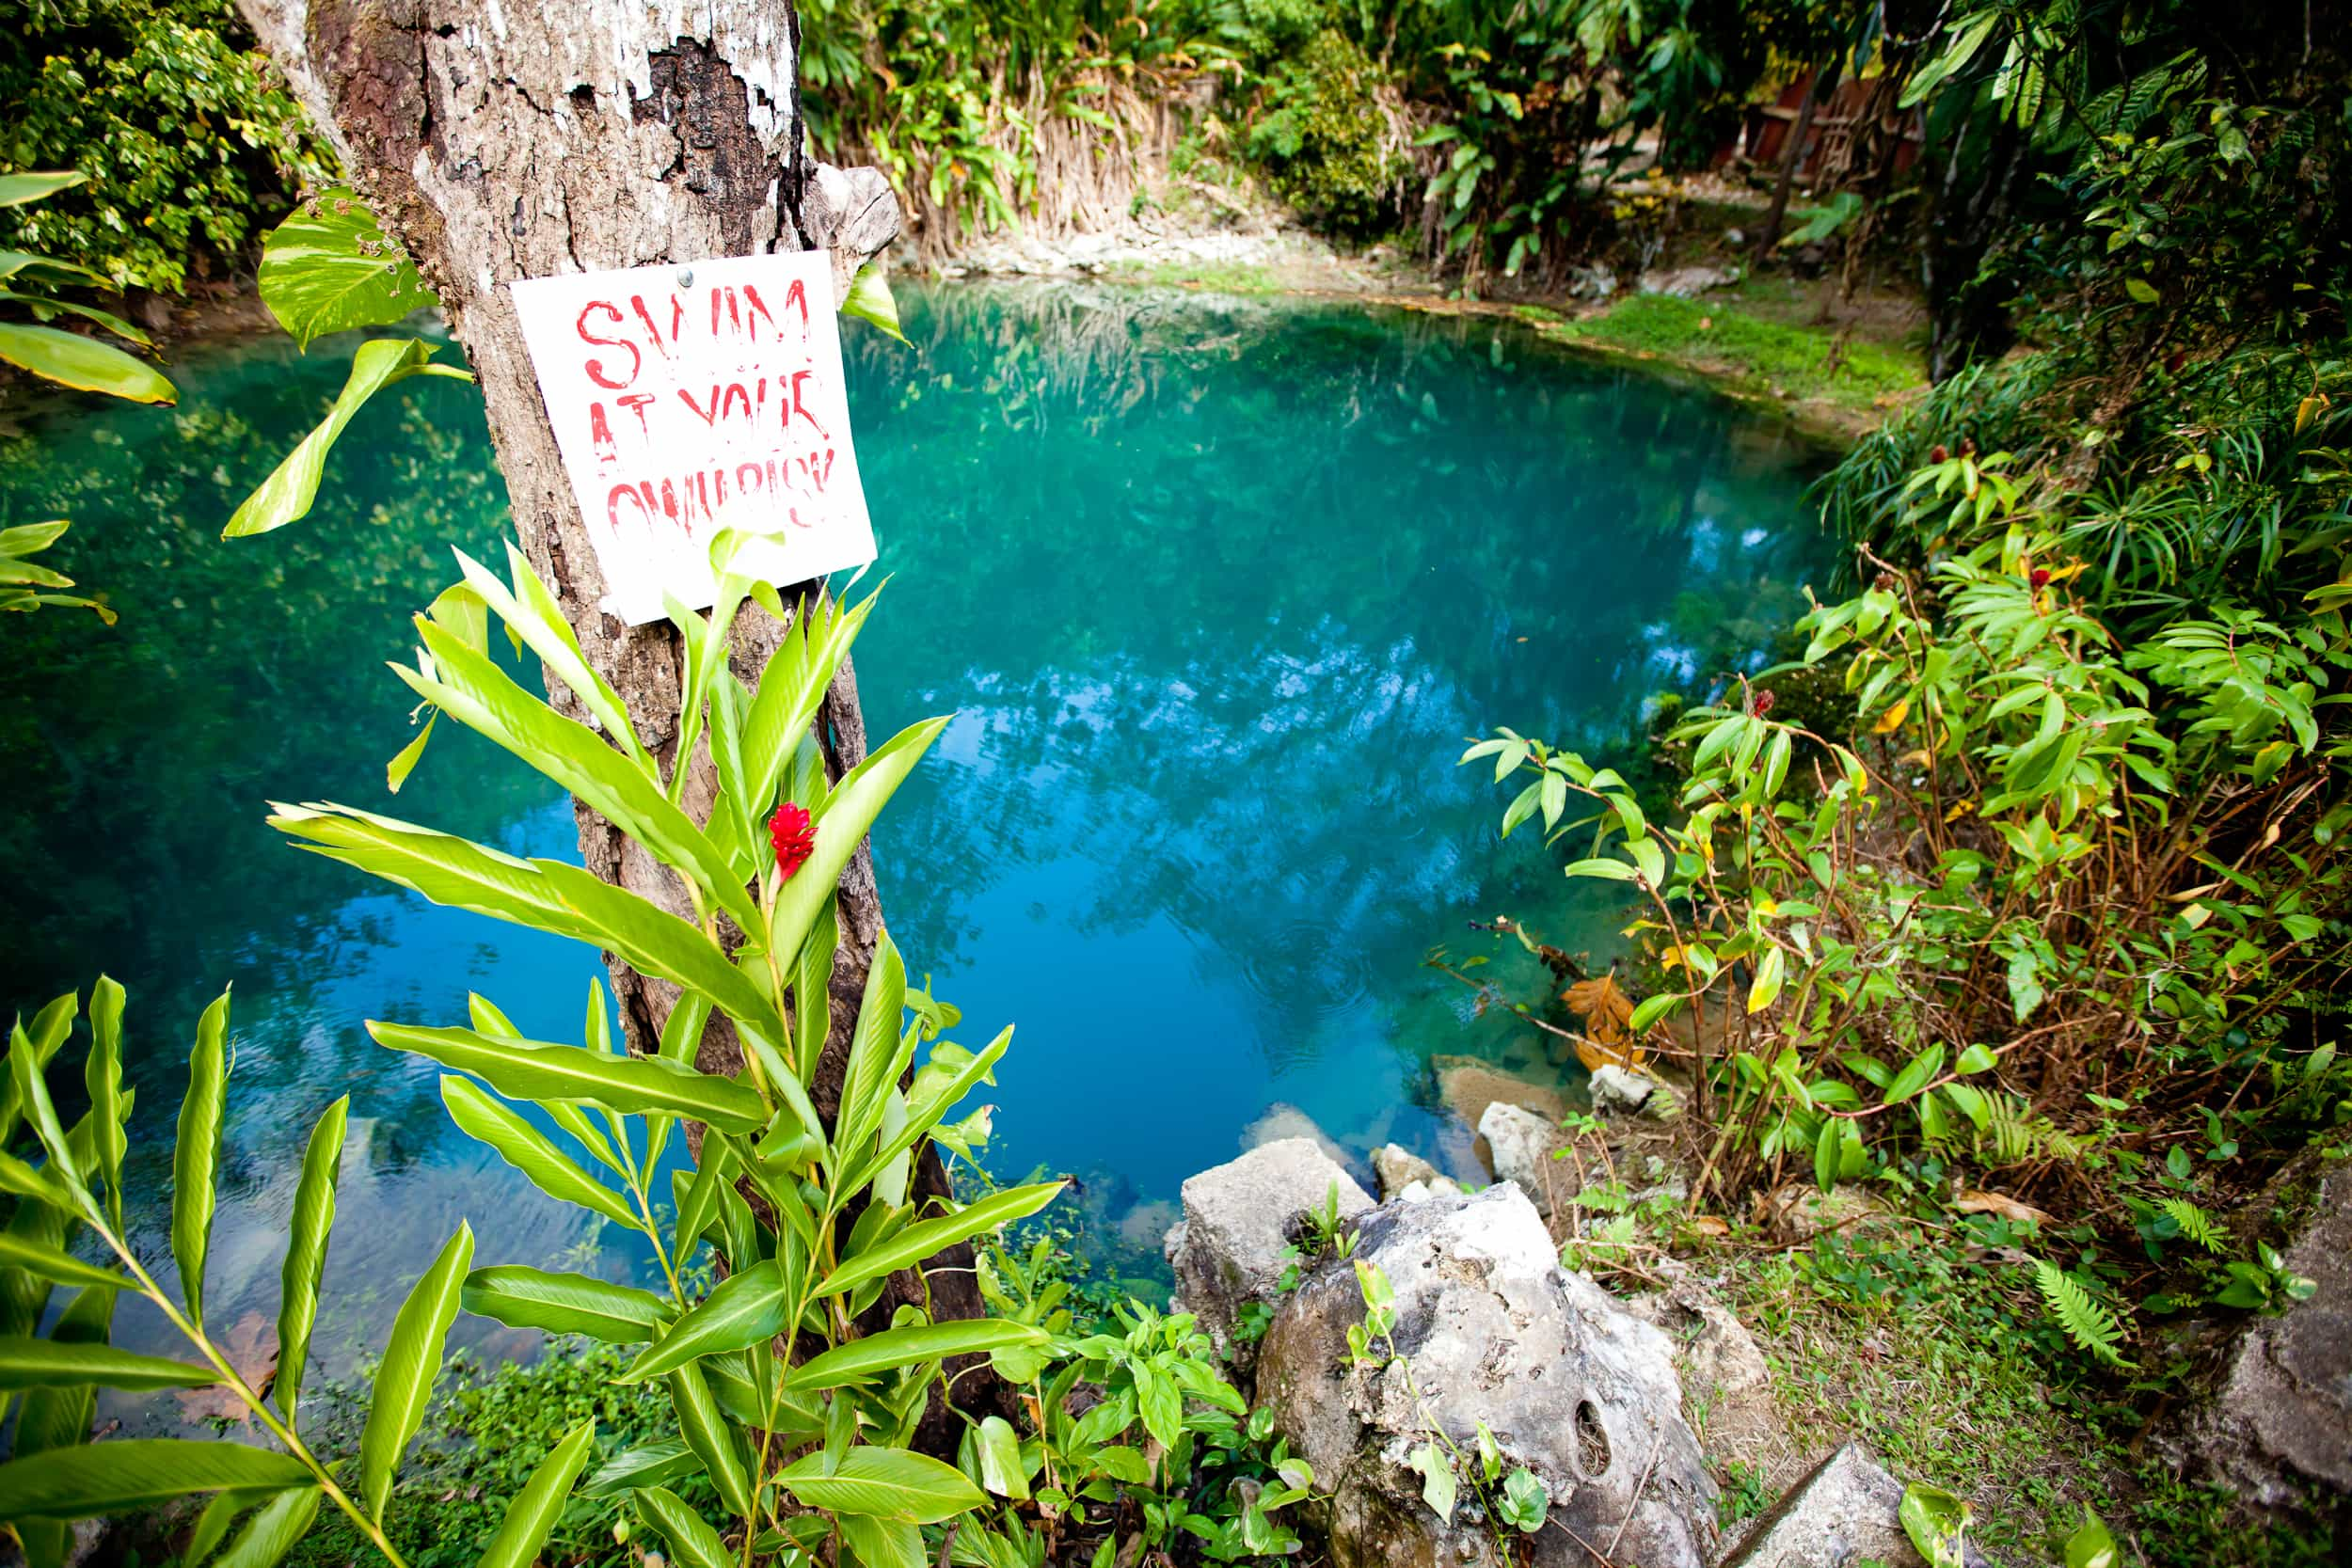 The Blue Hole natural spring is one of many hidden gems of Jamaica